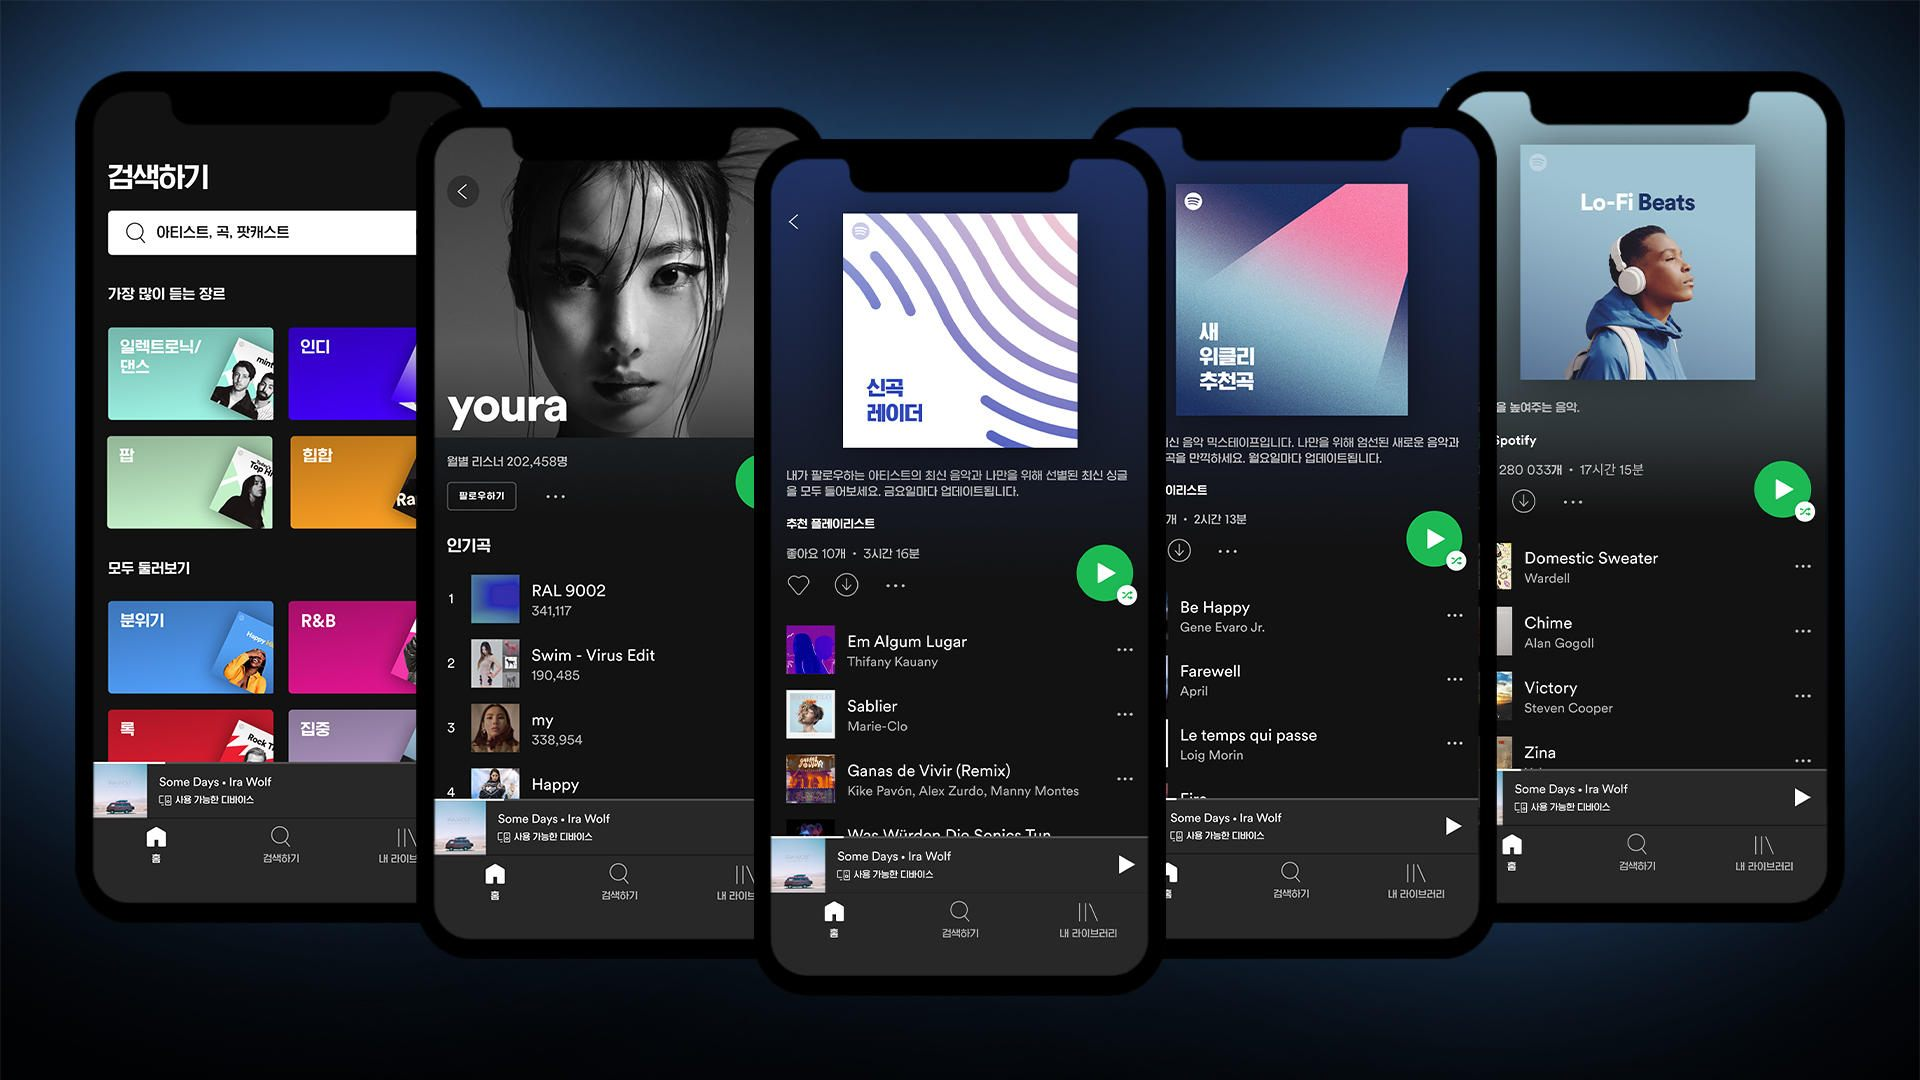 Offline Music on Mobile - Learn How to Download Spotify